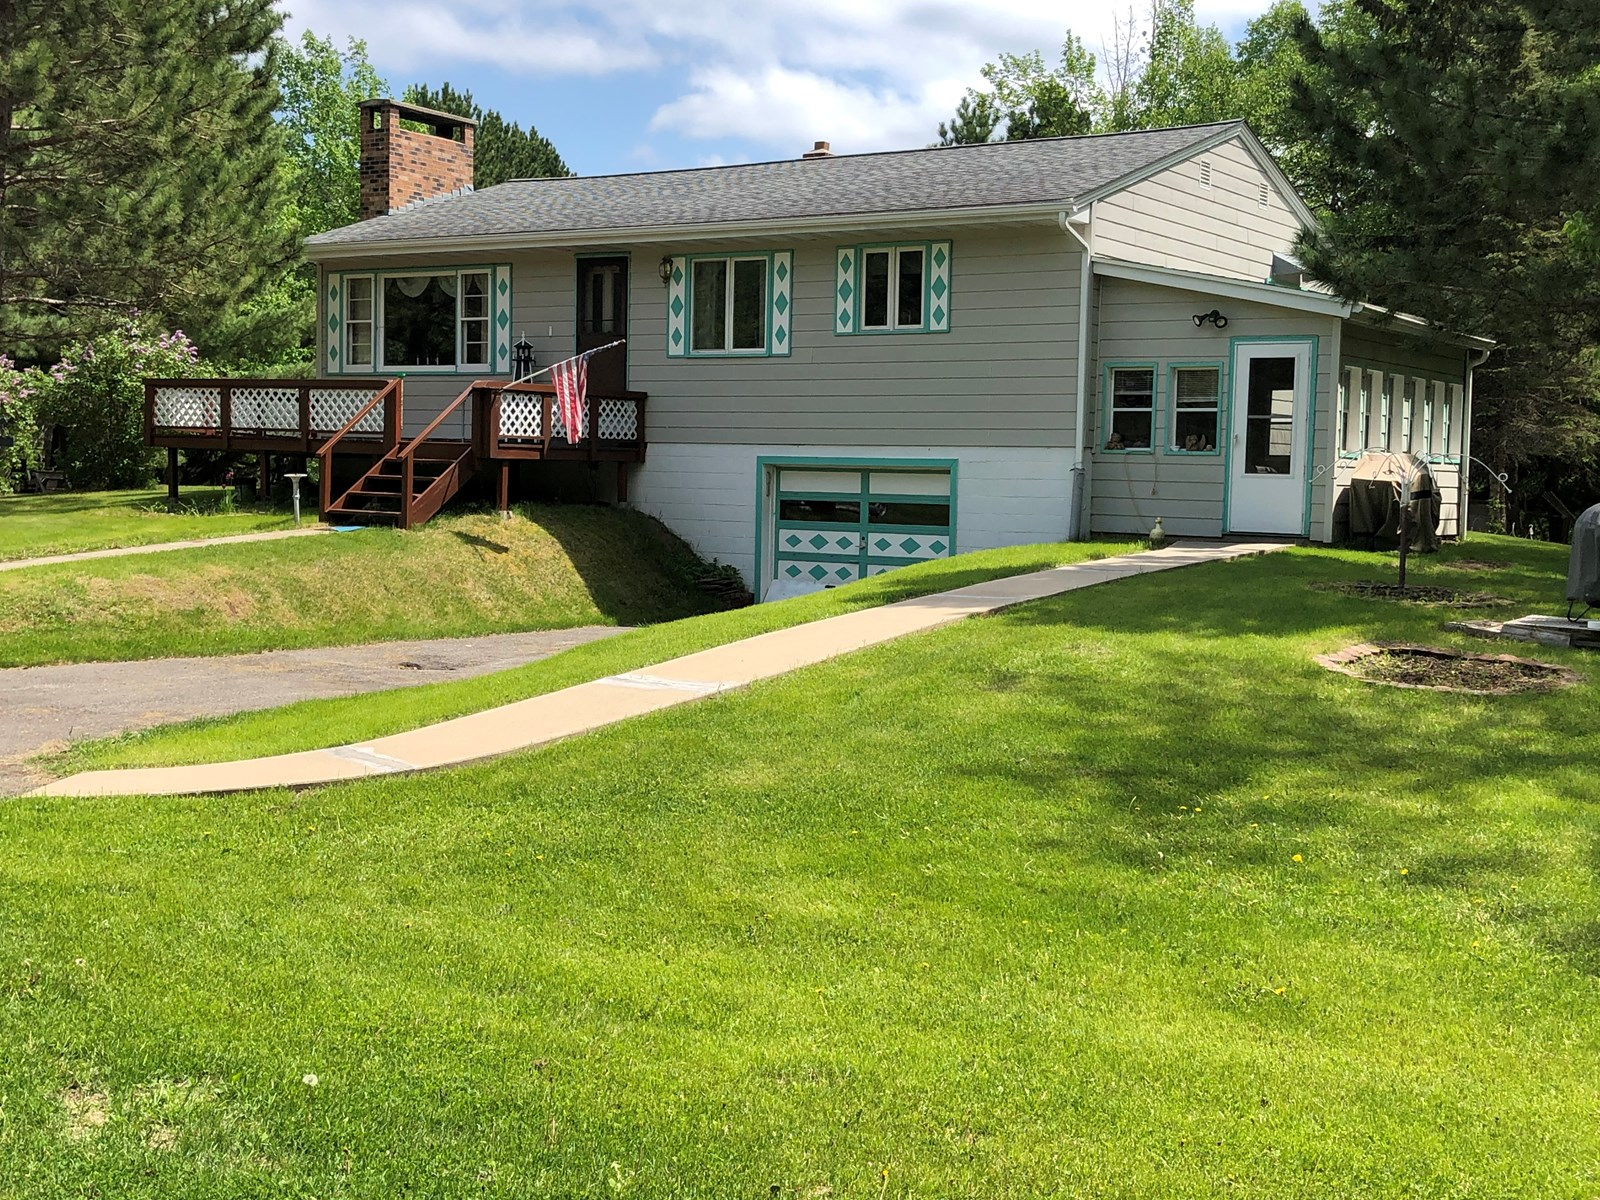 Country home for sale in Int'l Falls, MN